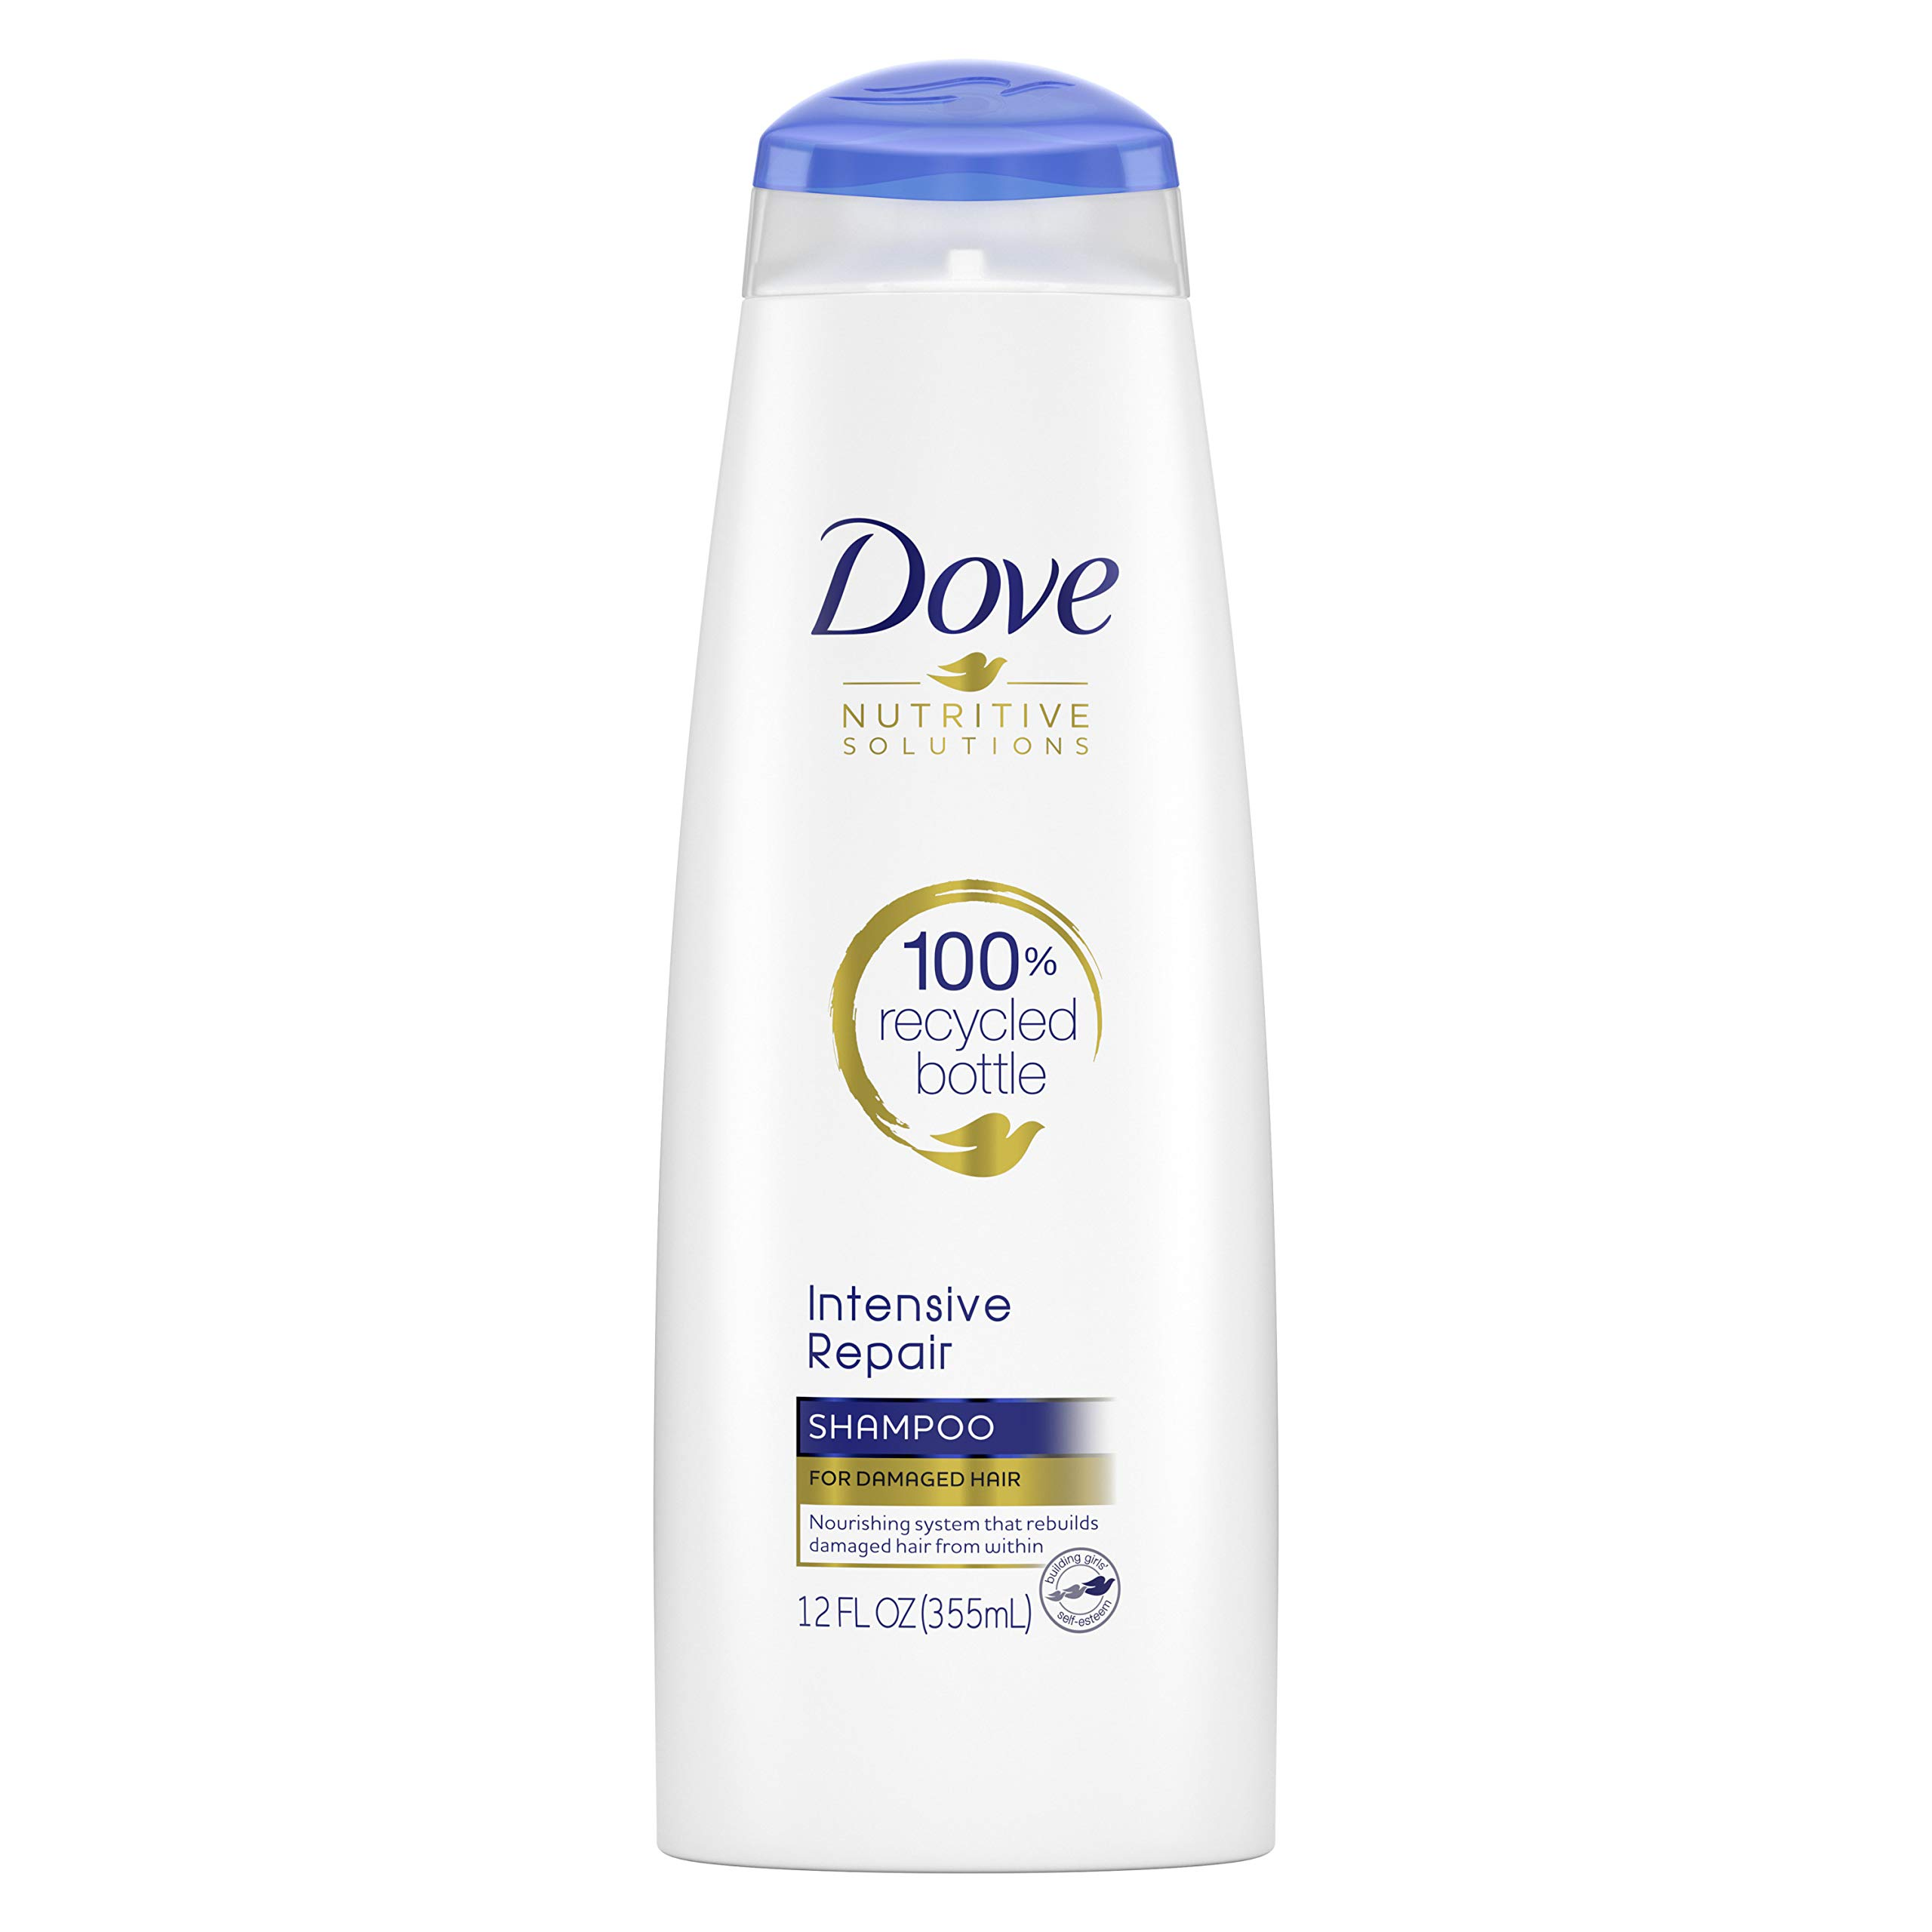 Dove Nutritive Solutions Shampoo Intensive Repair 12 oz (Pack of 6)